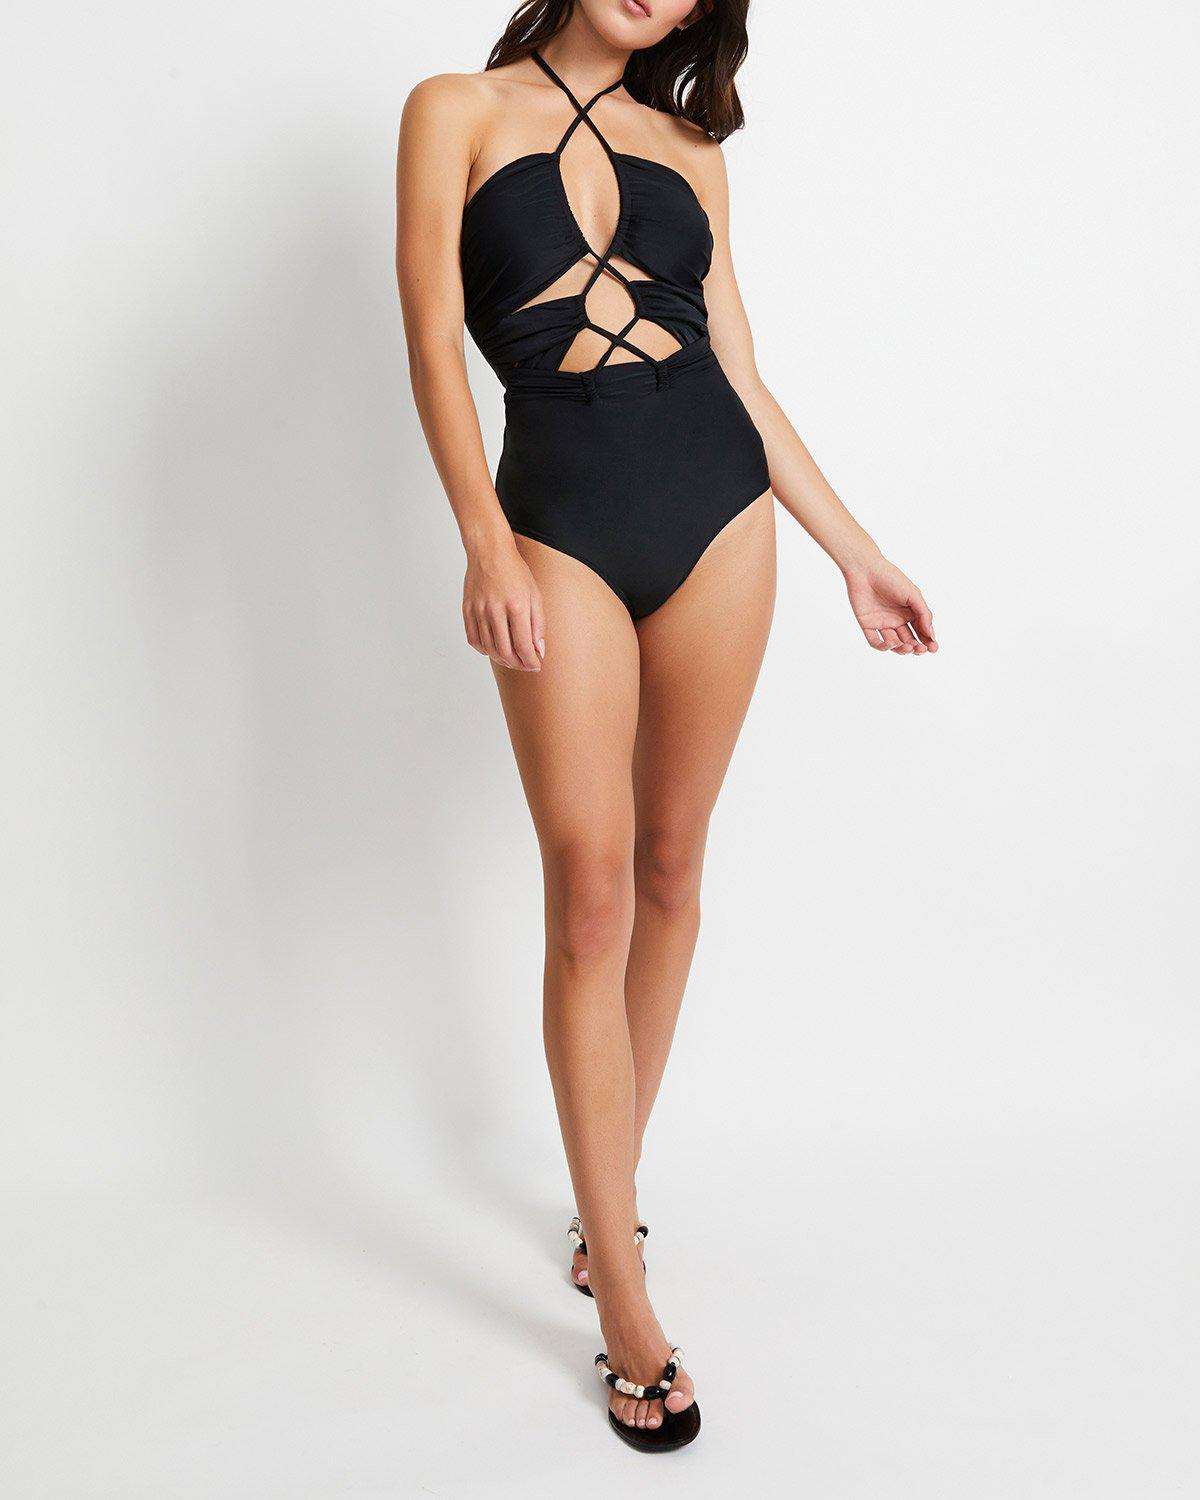 Laceup One Piece Swimsuit